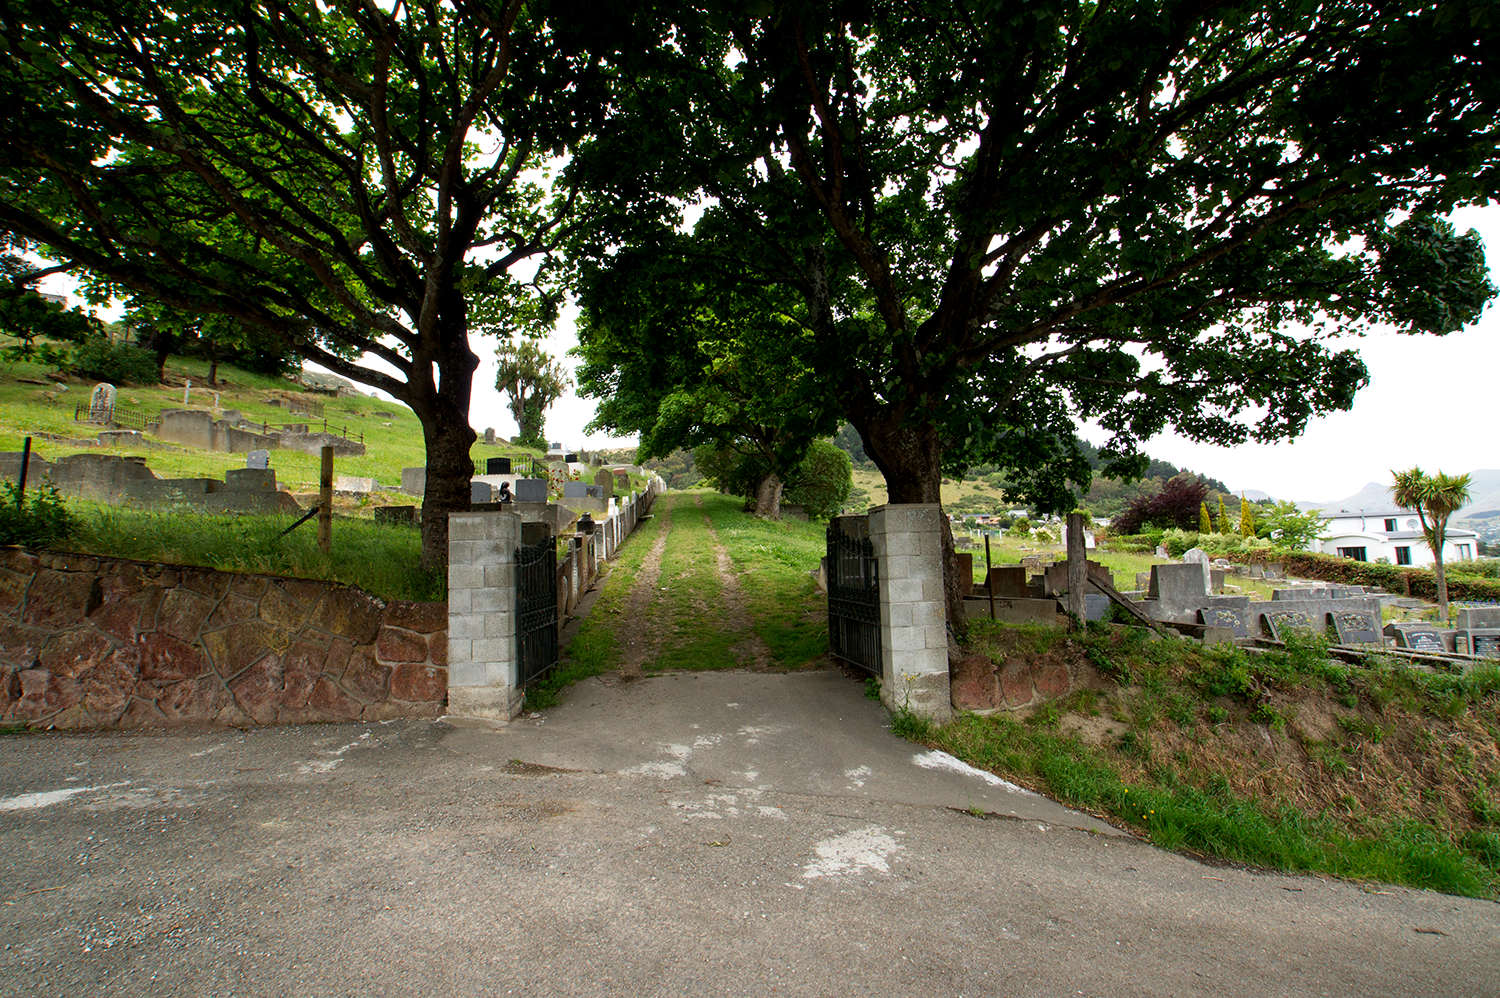 Lyttelton Anglican Cemetery in Lyttelton, Canterbury,New Zealand @Find A Grave Cemetery